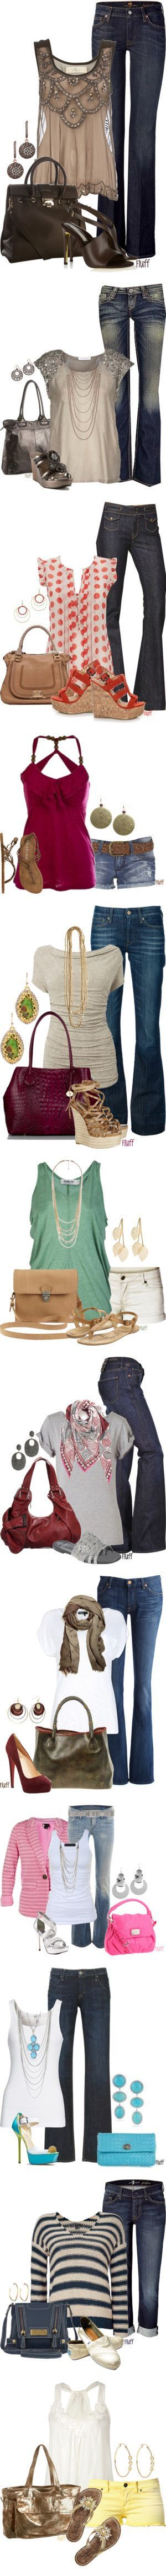 I really like the 1920's glam of the tops paired with modern casual jeans.